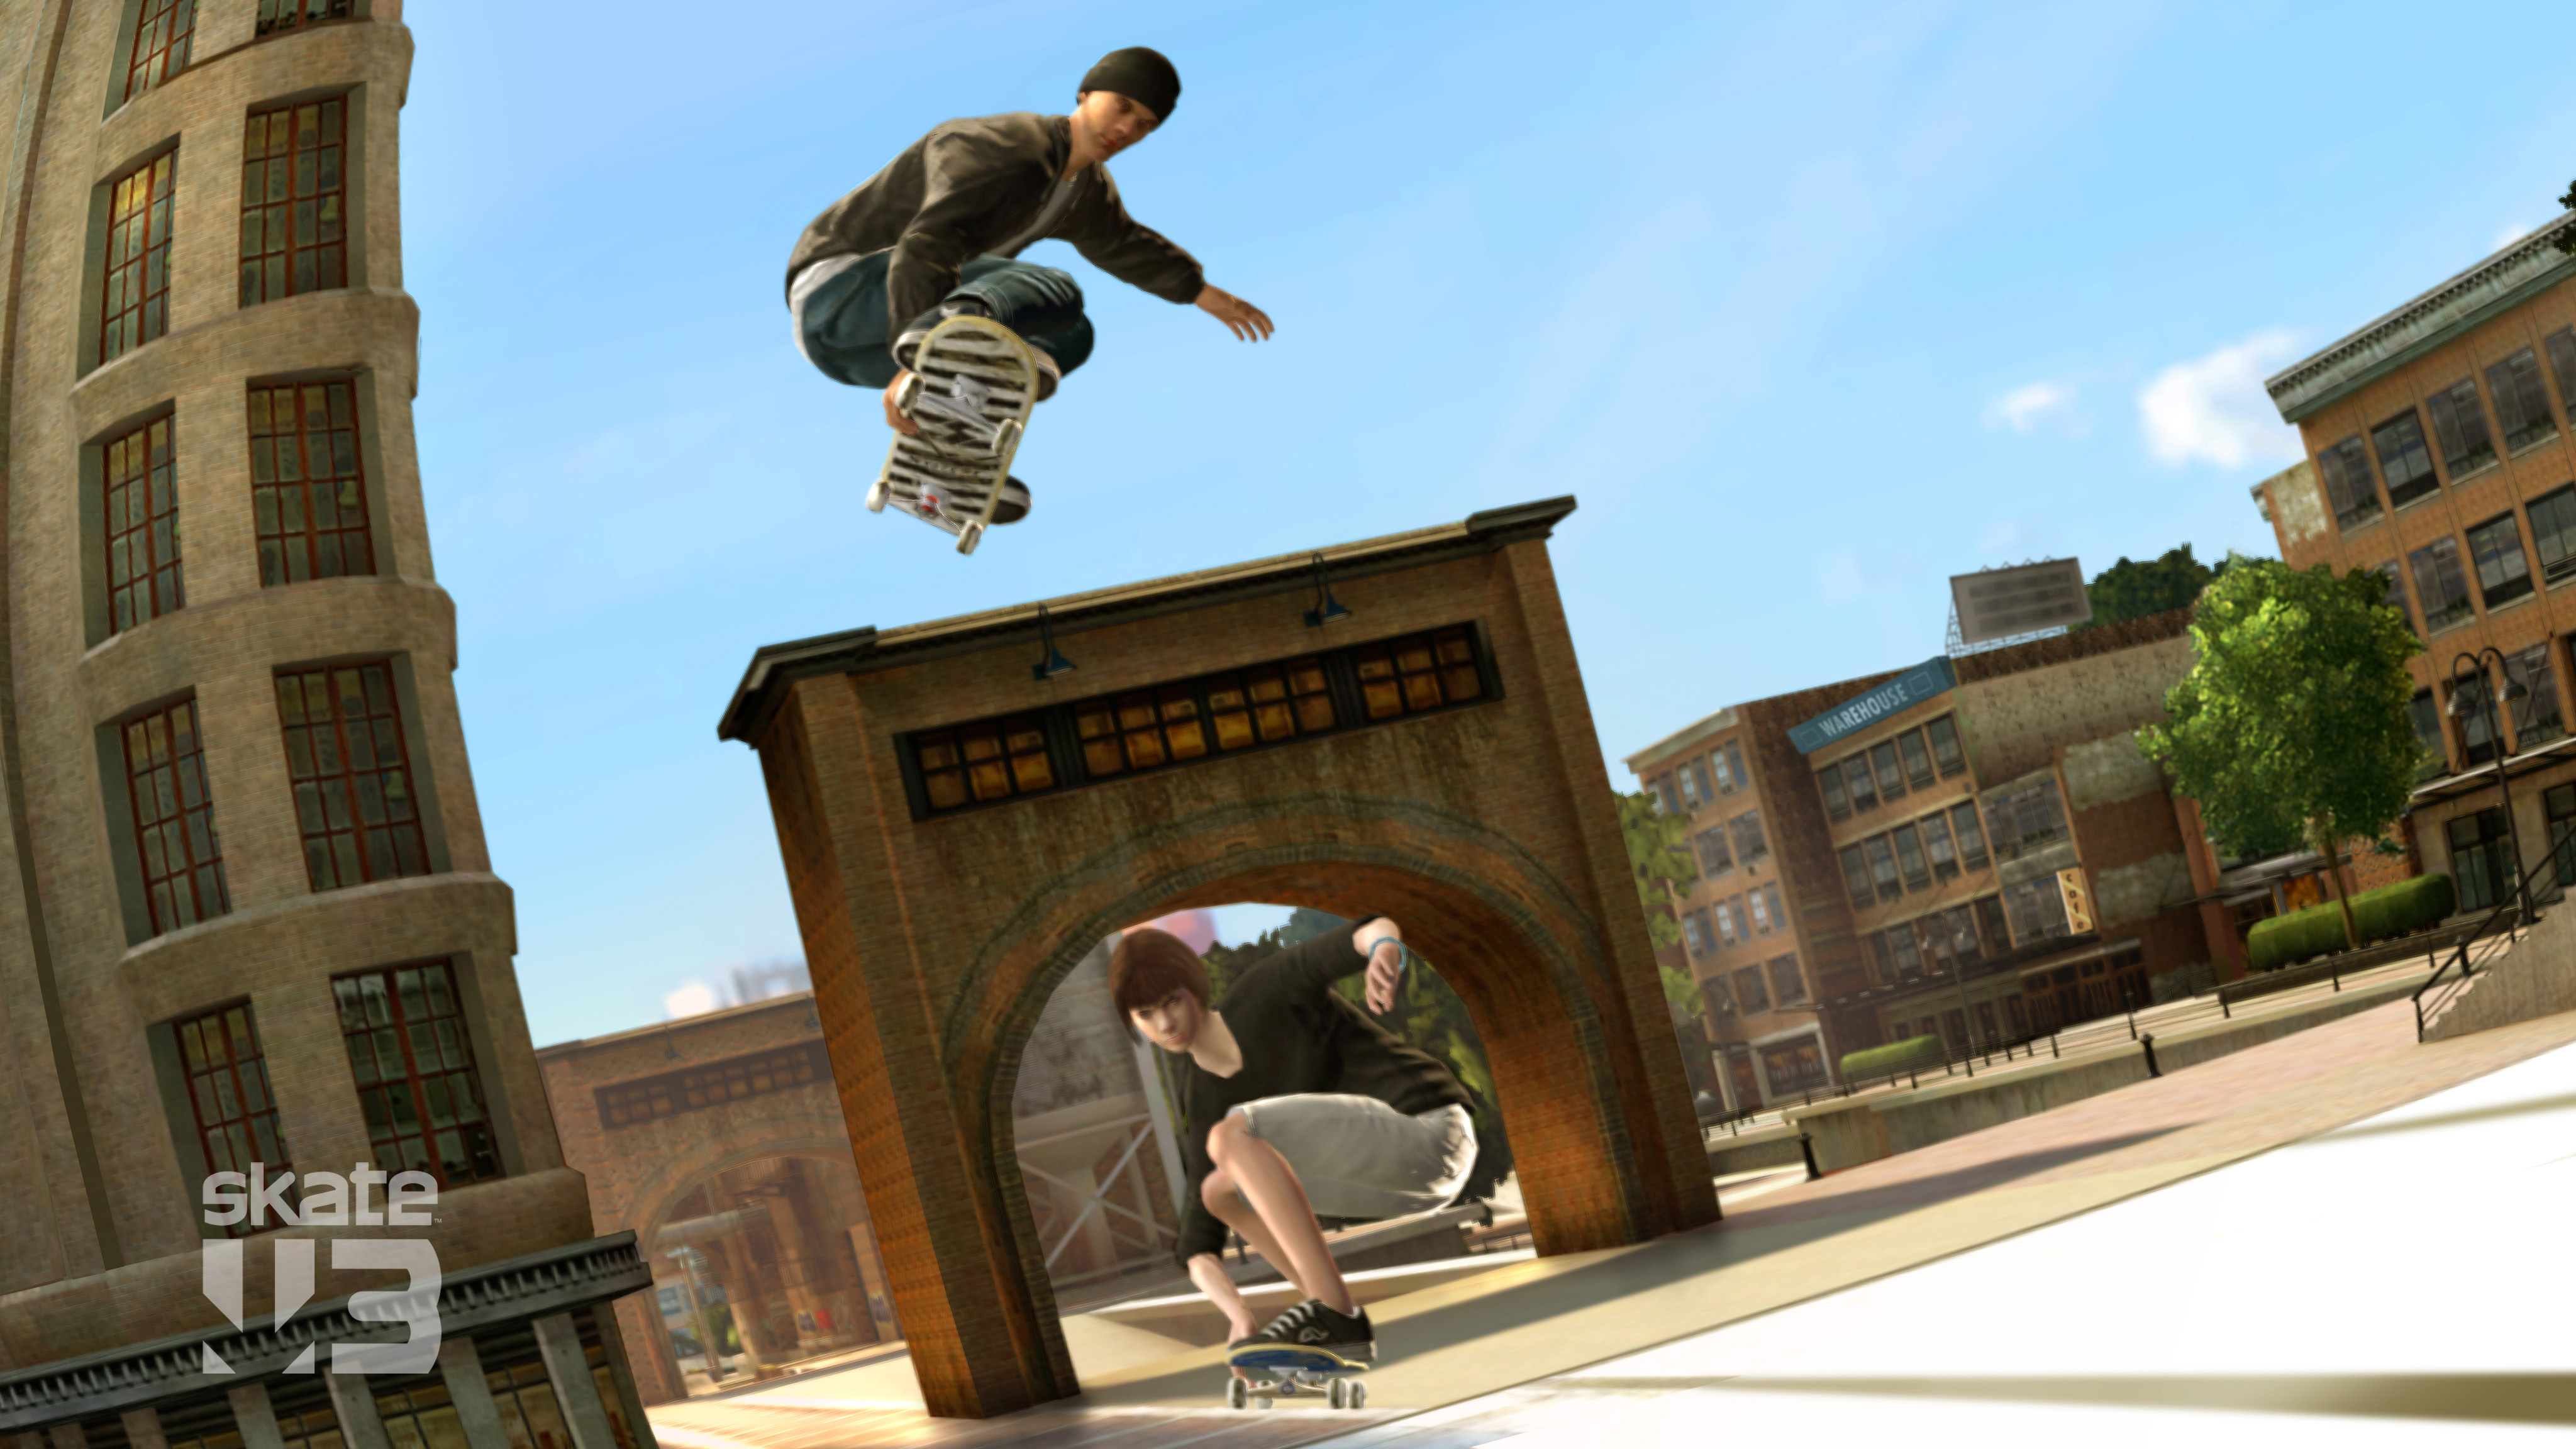 Amazon.com: Skate 3 - Playstation 3: Electronic Arts: Video Games